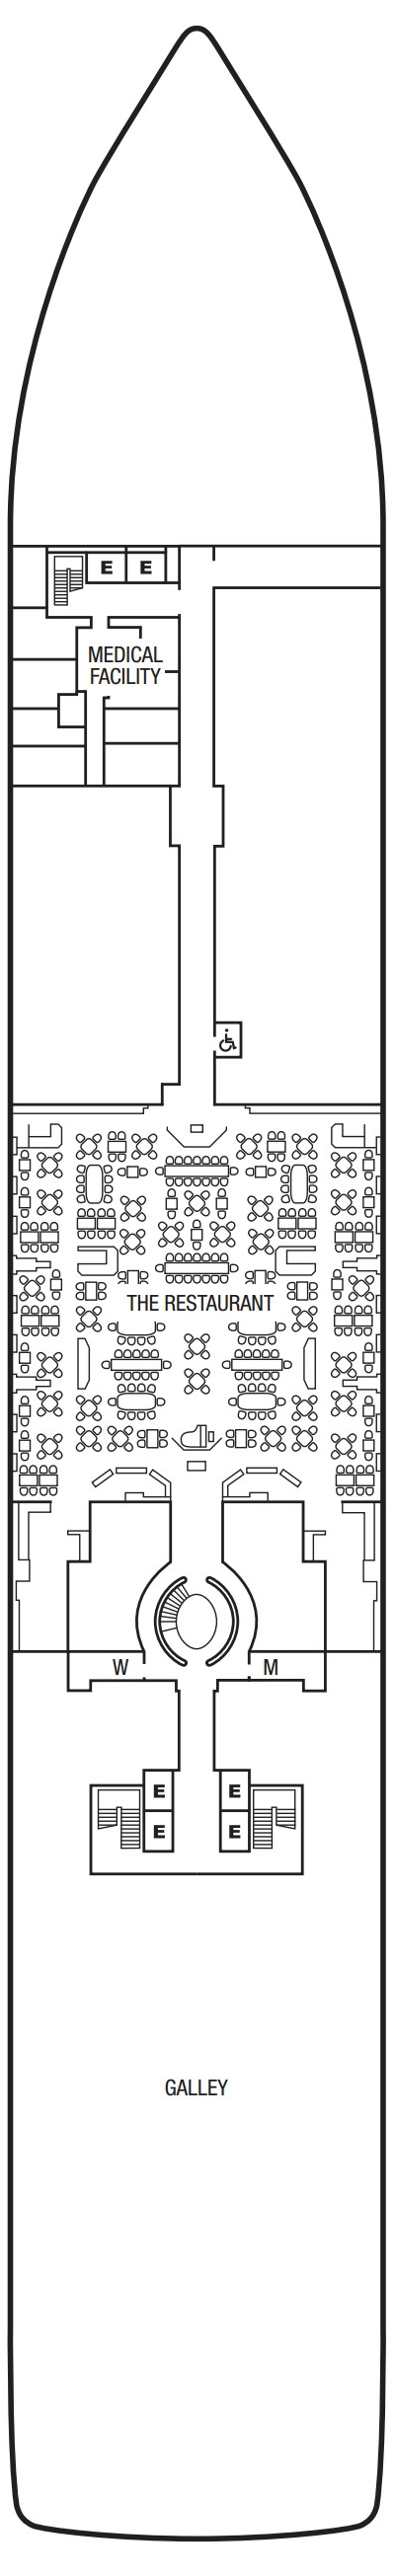 Seabourn Ovation Deck 4 layout